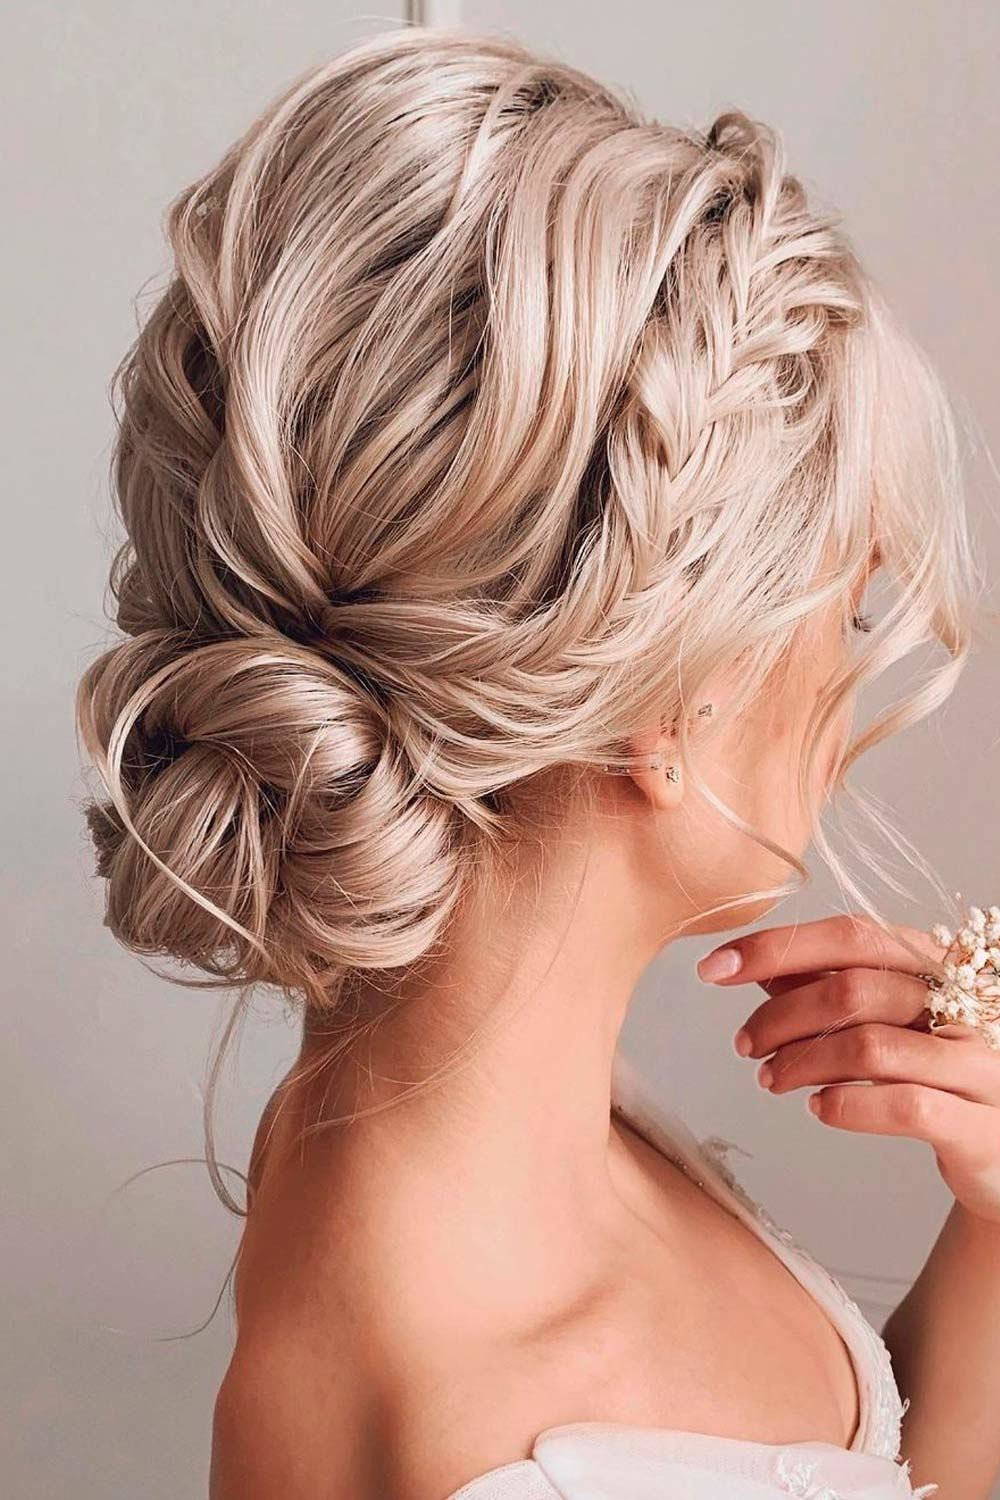 Crown Braided Updos For Medium Hair, updos for medium curly hair, updos for medium length curly hair, updos for medium thin hair